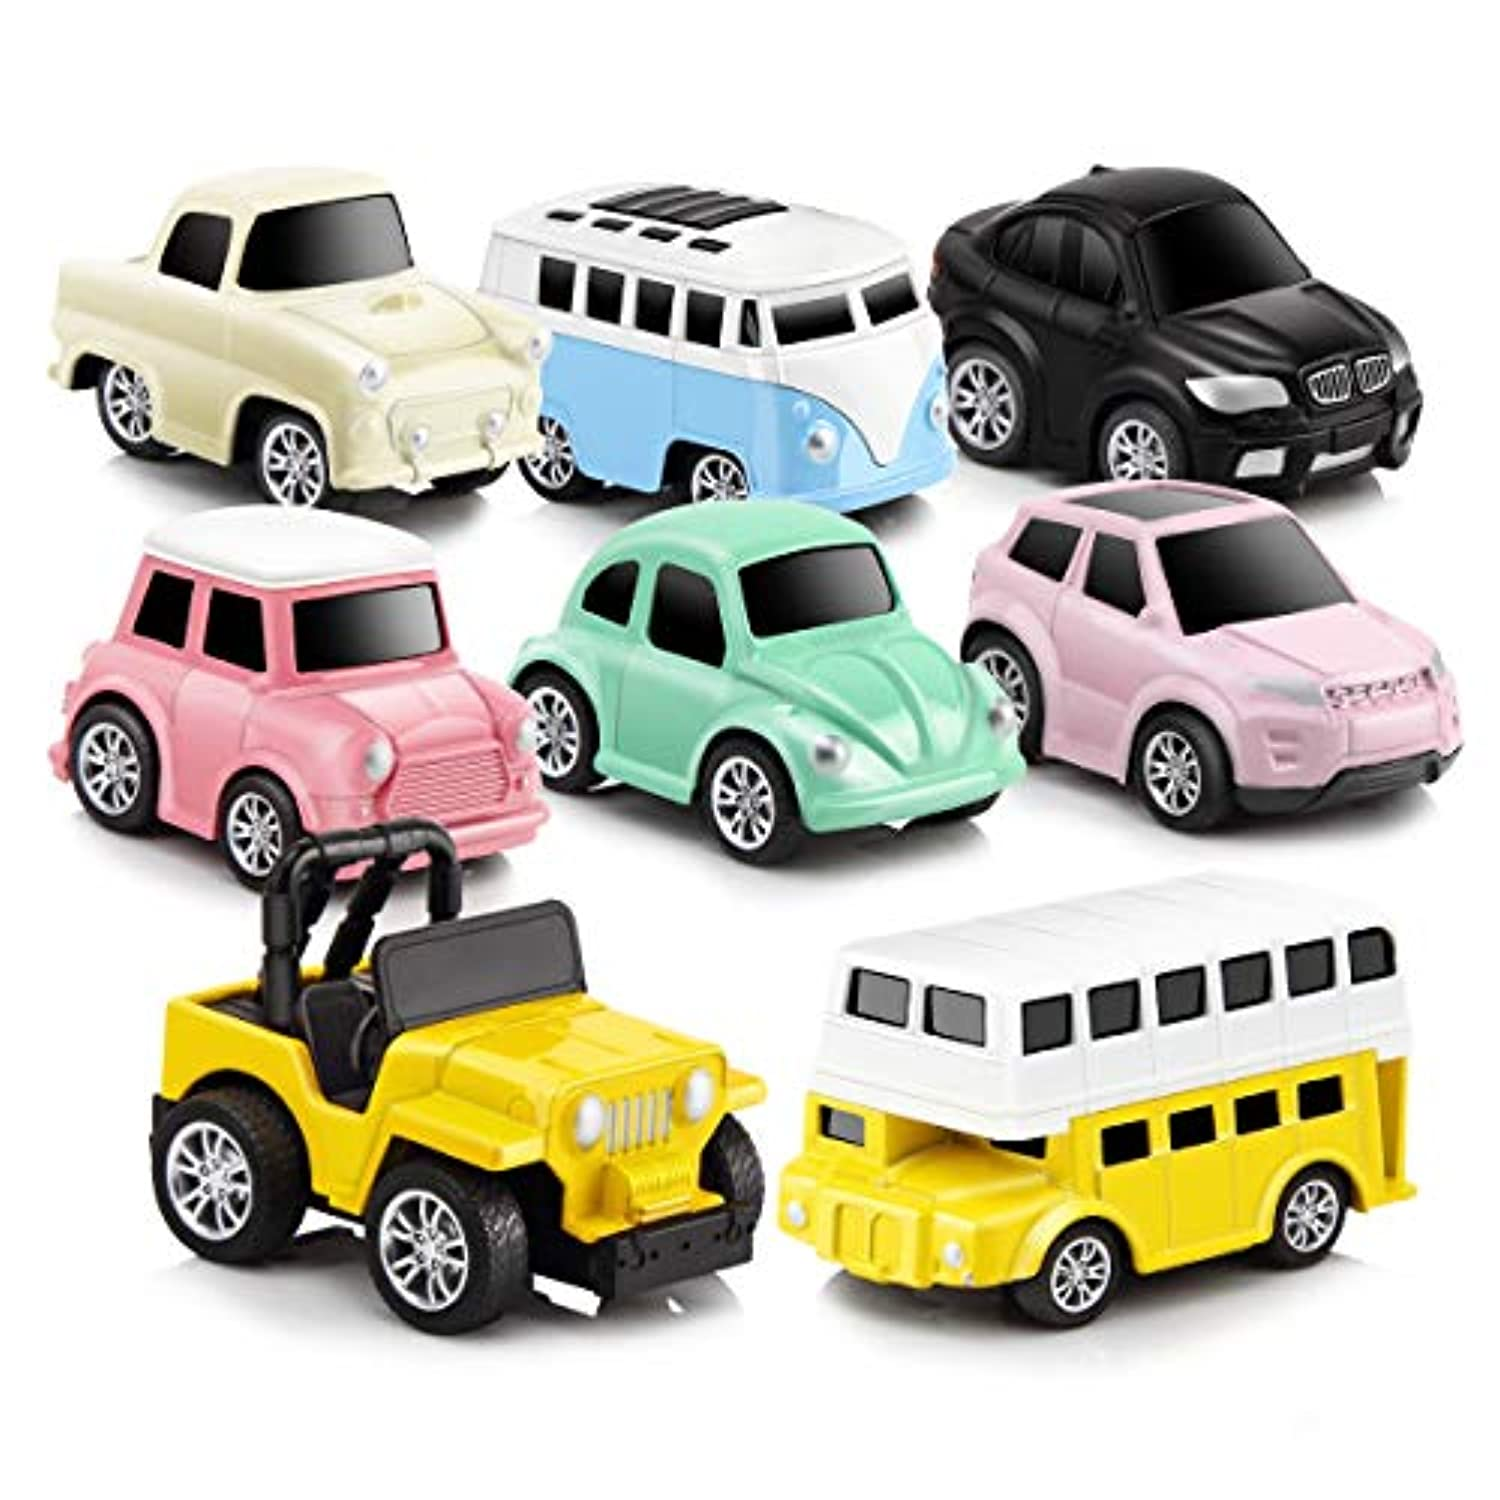 (rainbow) - Pull Back Cars Alloy Vehicles Set Mini Car Model Construction and Raced Trucks for Toddlers Gift 8 PCS